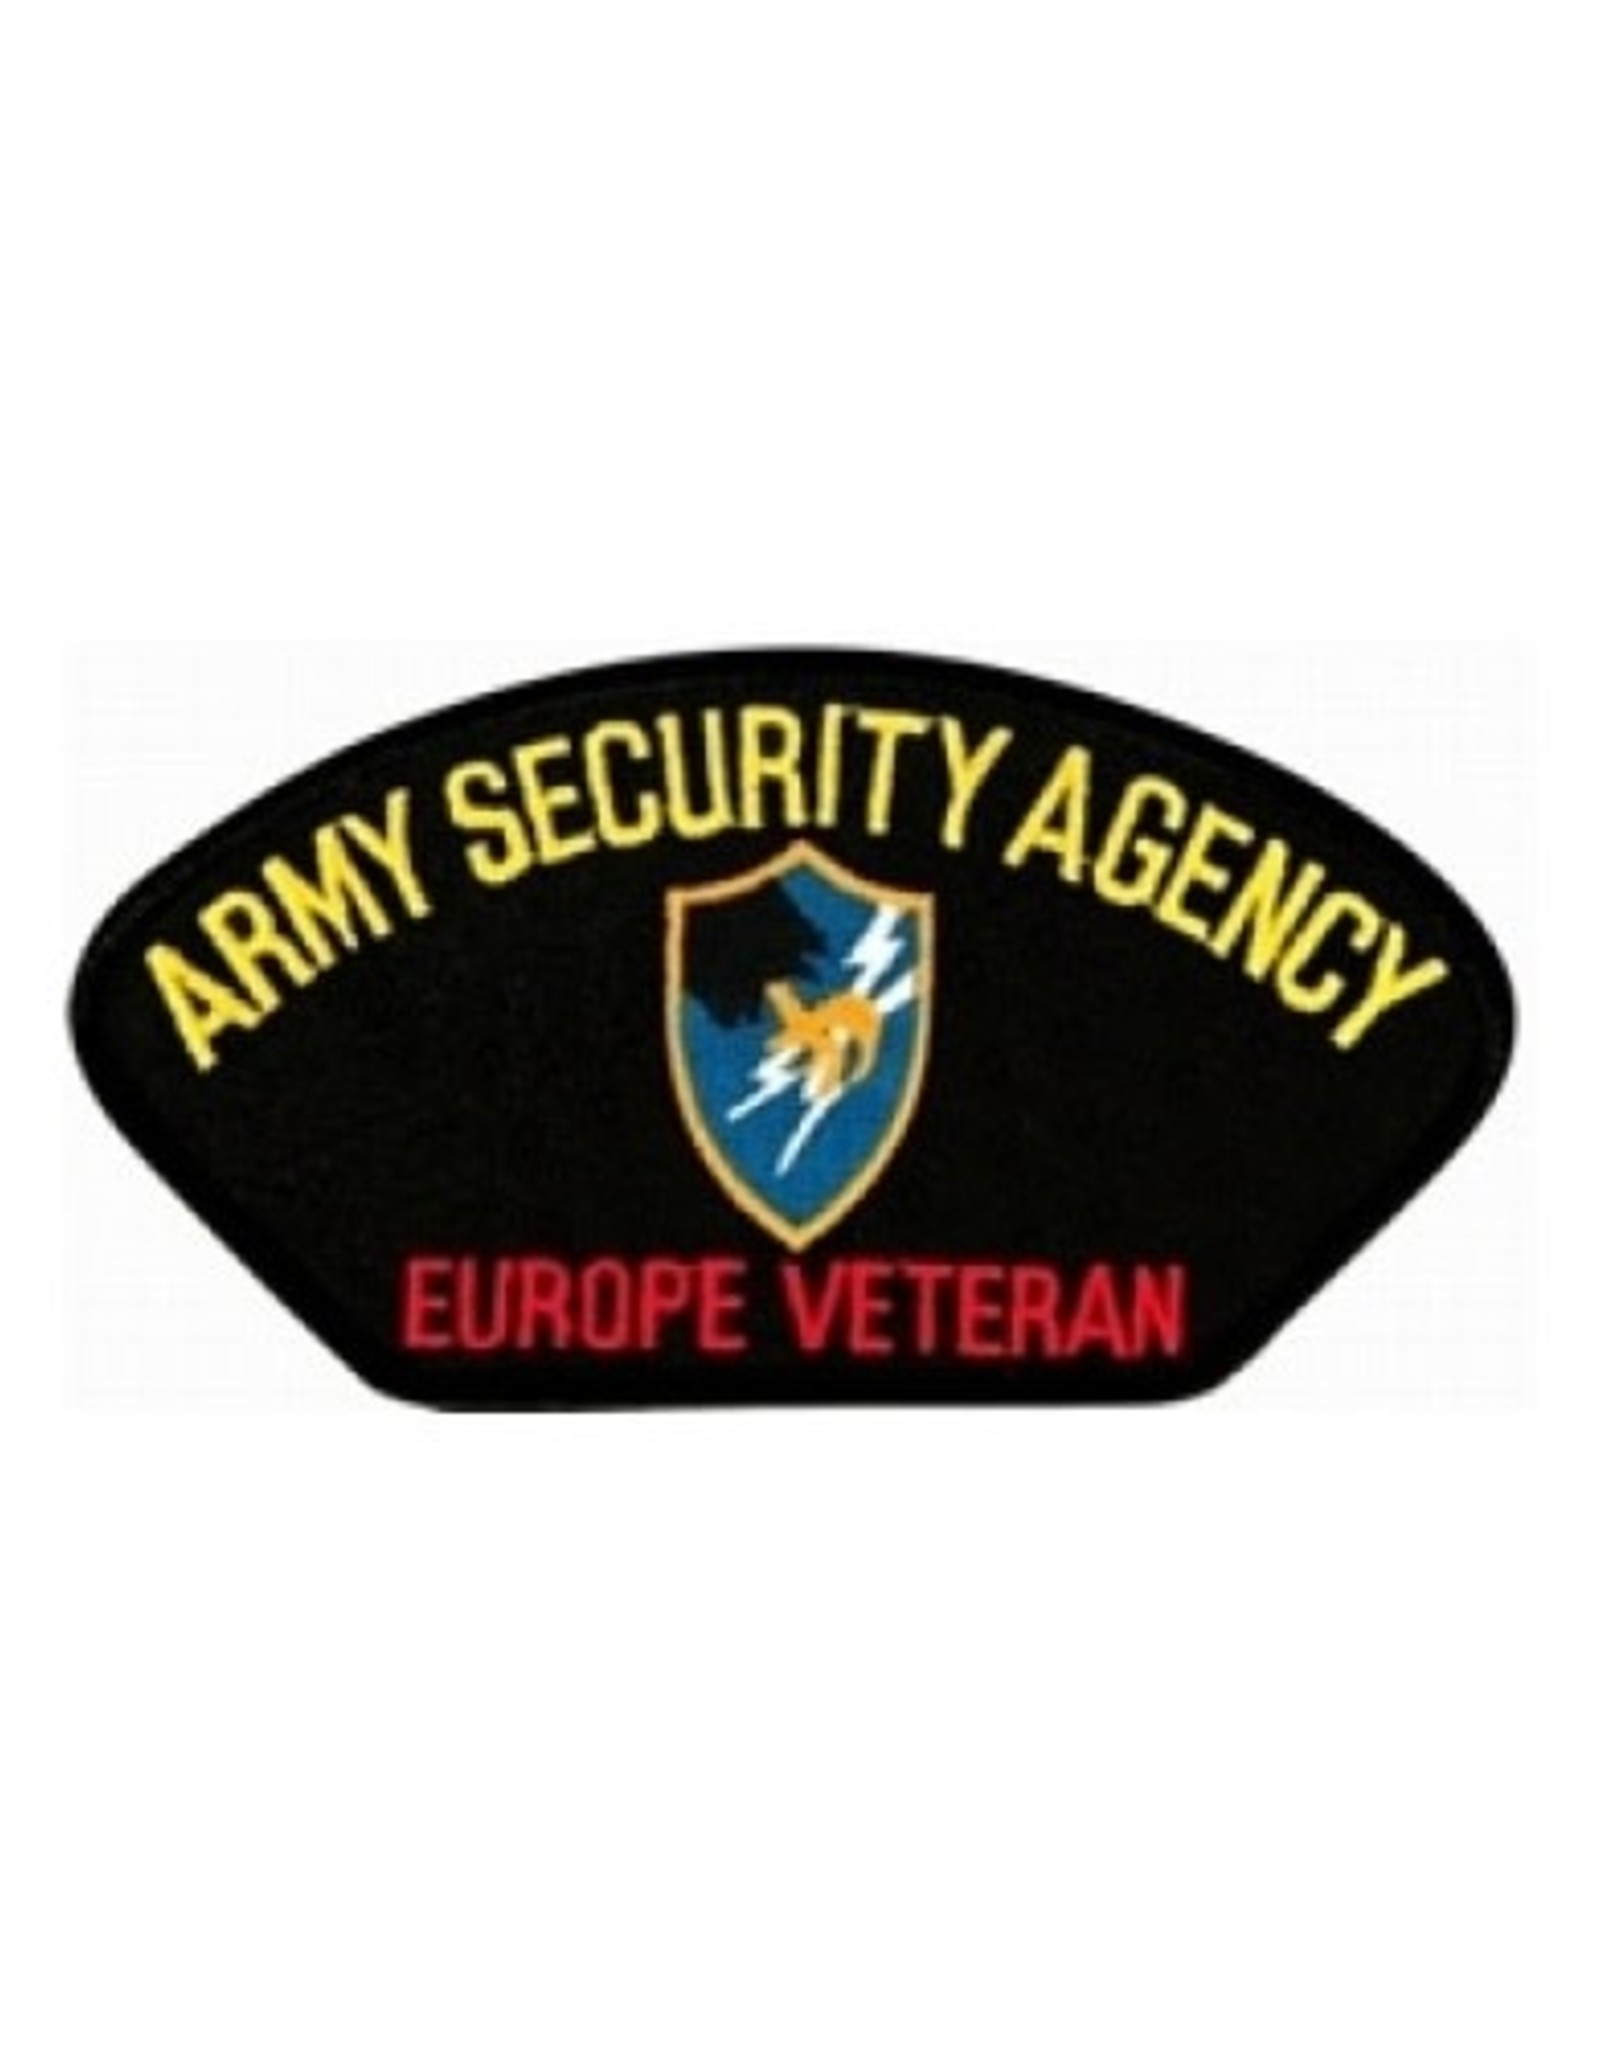 """MidMil Embroidered Army Security Agency - Europe Veteran Patch 5.2"""" wide x 2.8"""" high"""""""